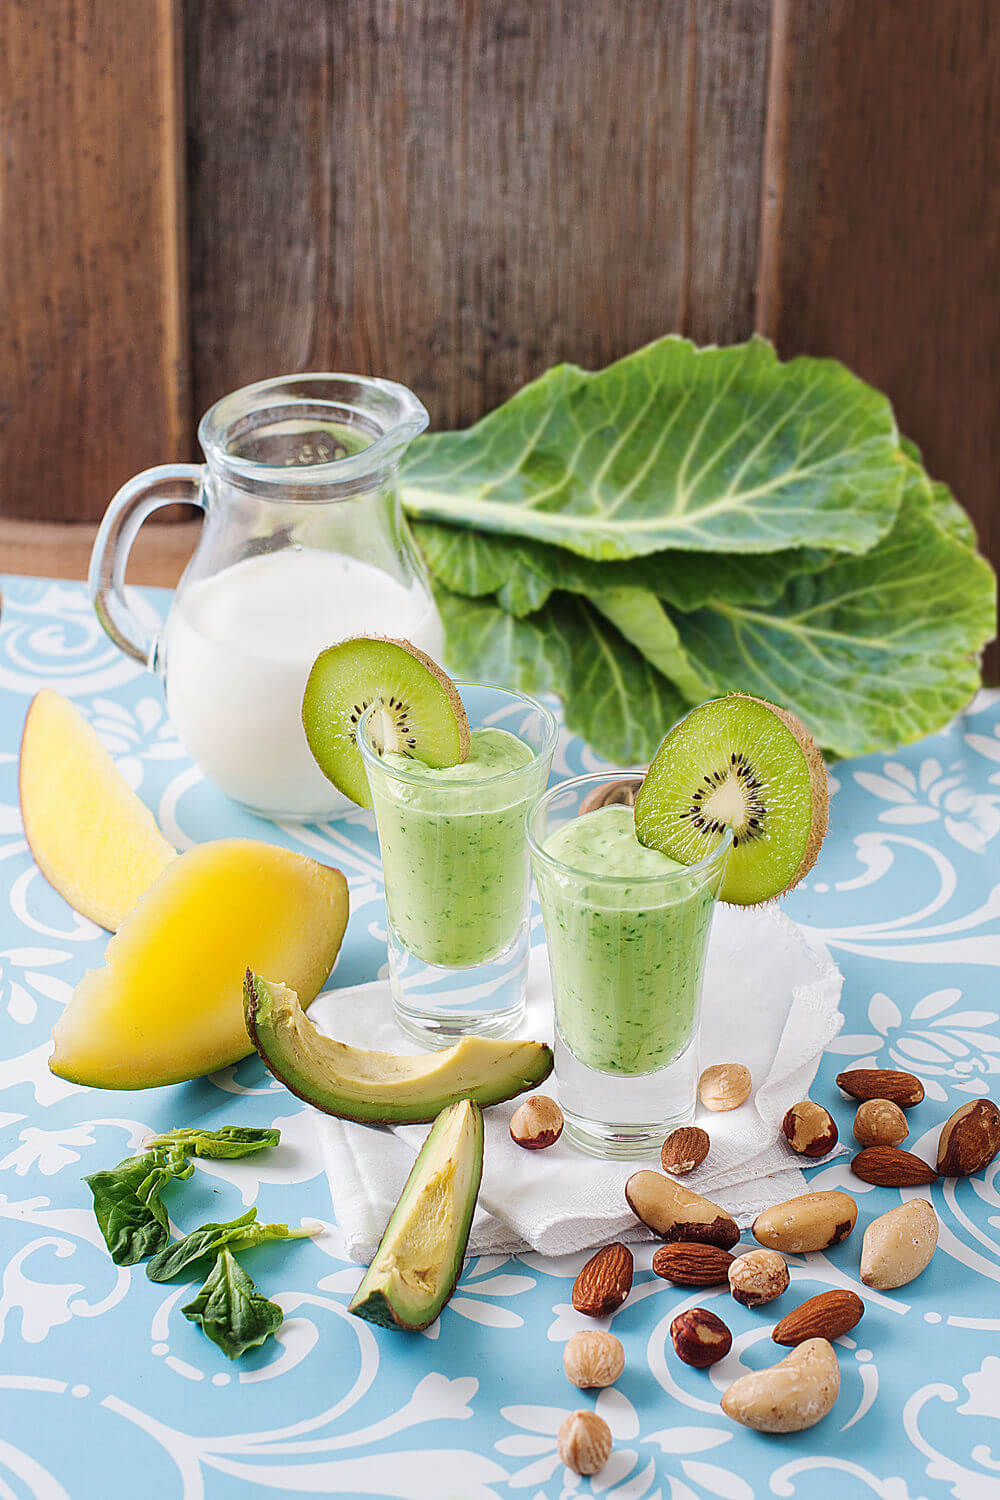 Spinach, hazelnuts, Brazil nuts, pumpkin seeds, almonds, avocado, mango, collard greens, almond milk and kiwifruit smoothie